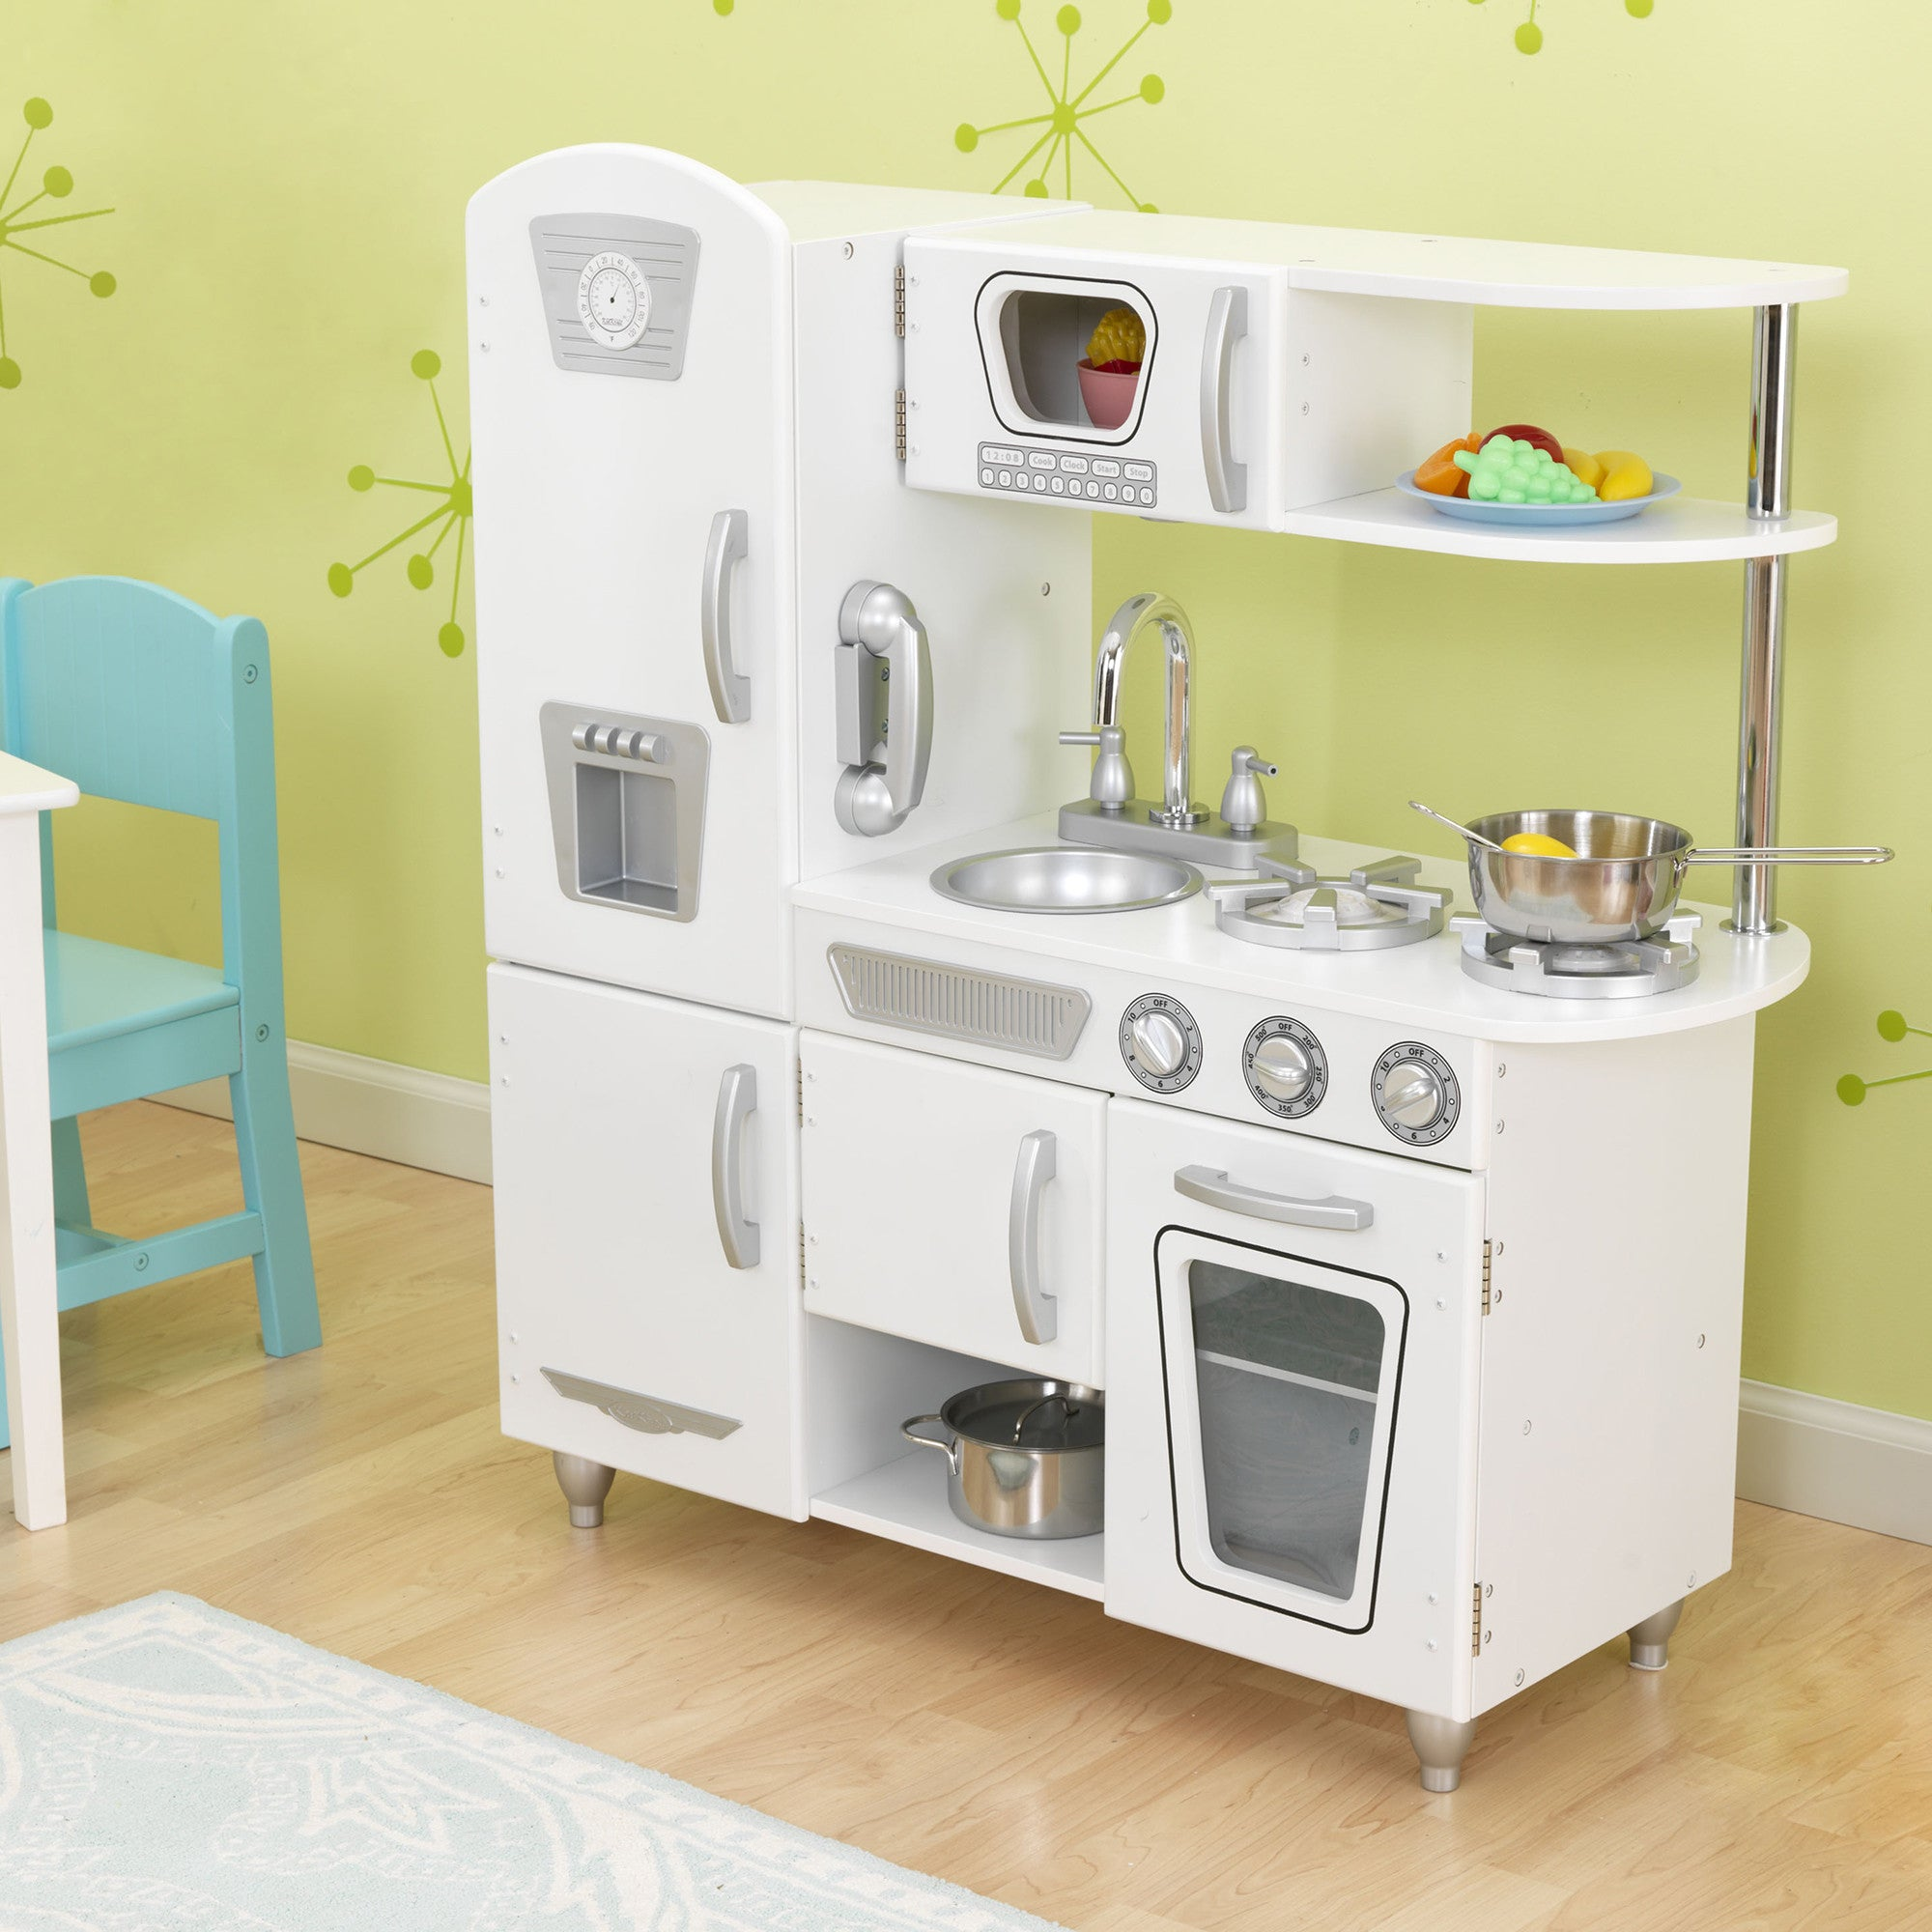 Kidkraft Retro Kitchen